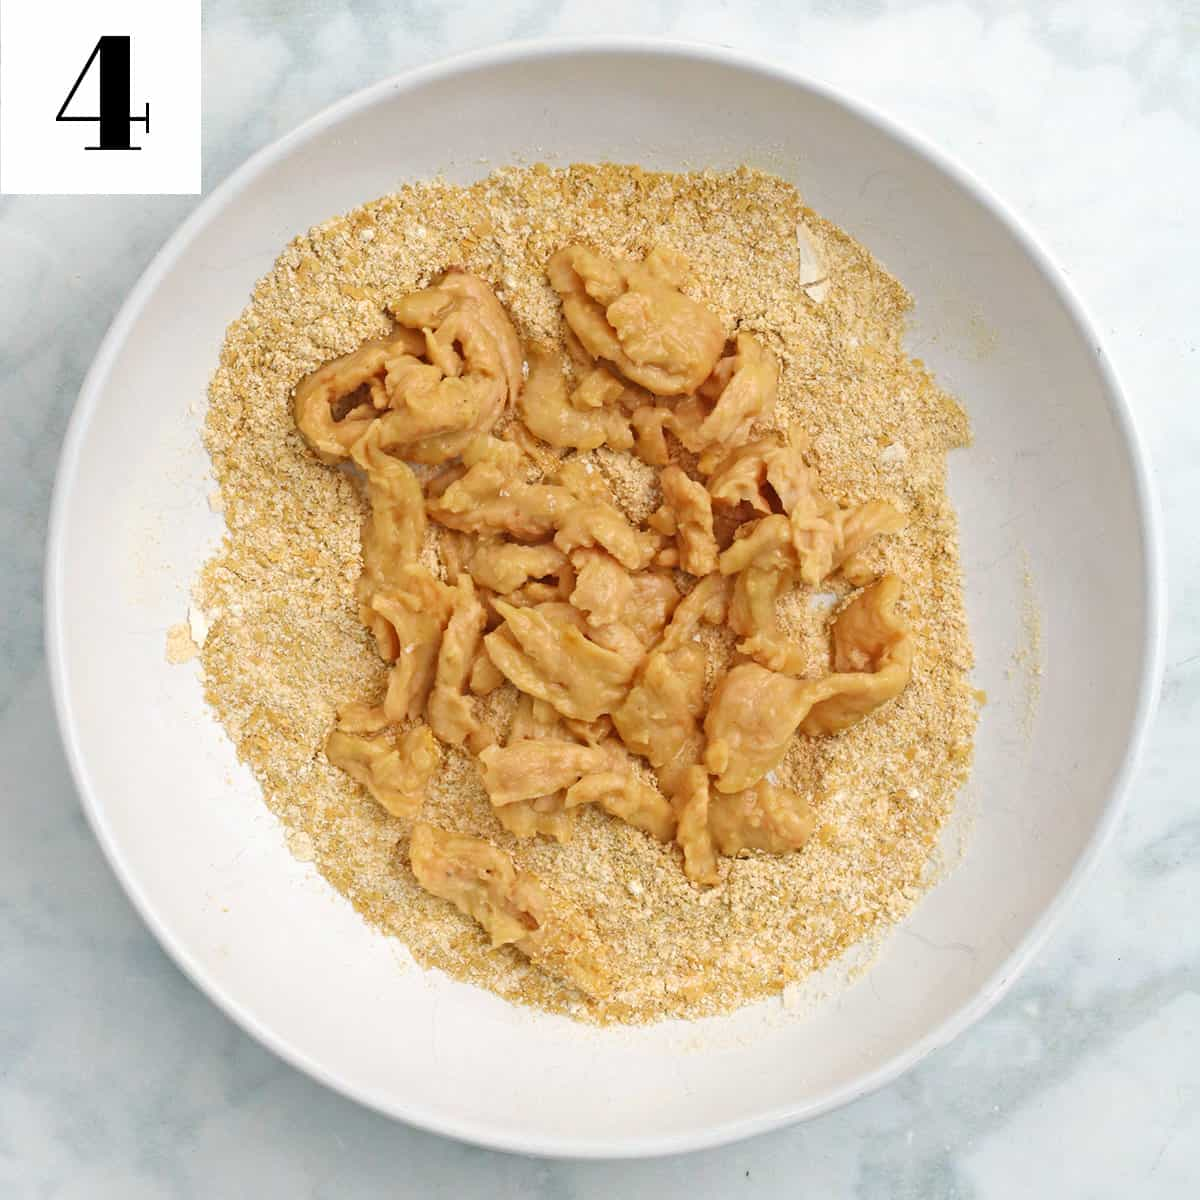 soy curls and breading in a white bowl